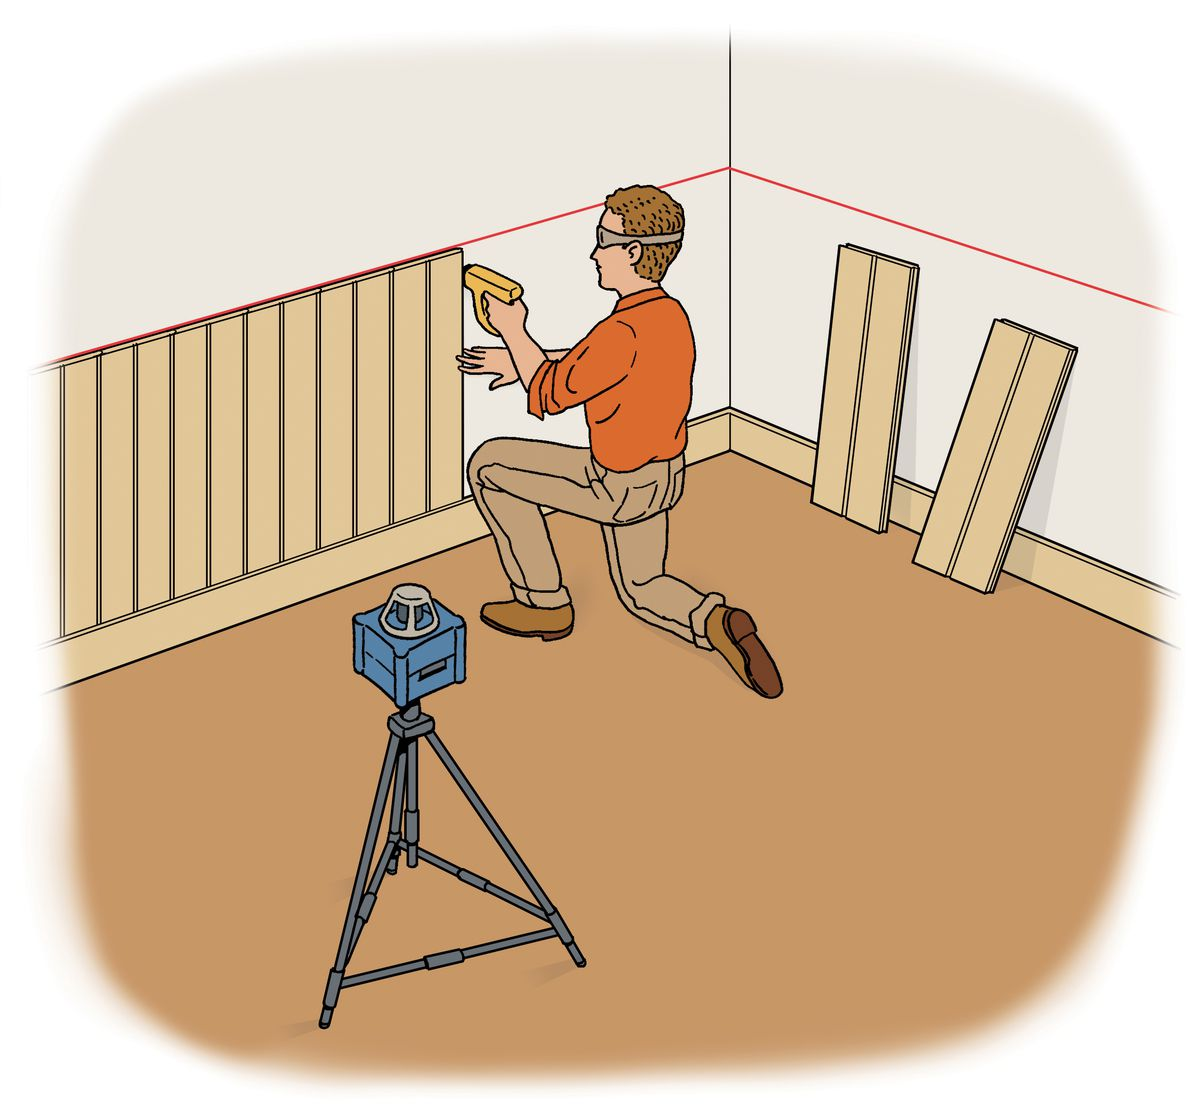 Person installing wainscot on a wall and using a laser level to help mark the height.